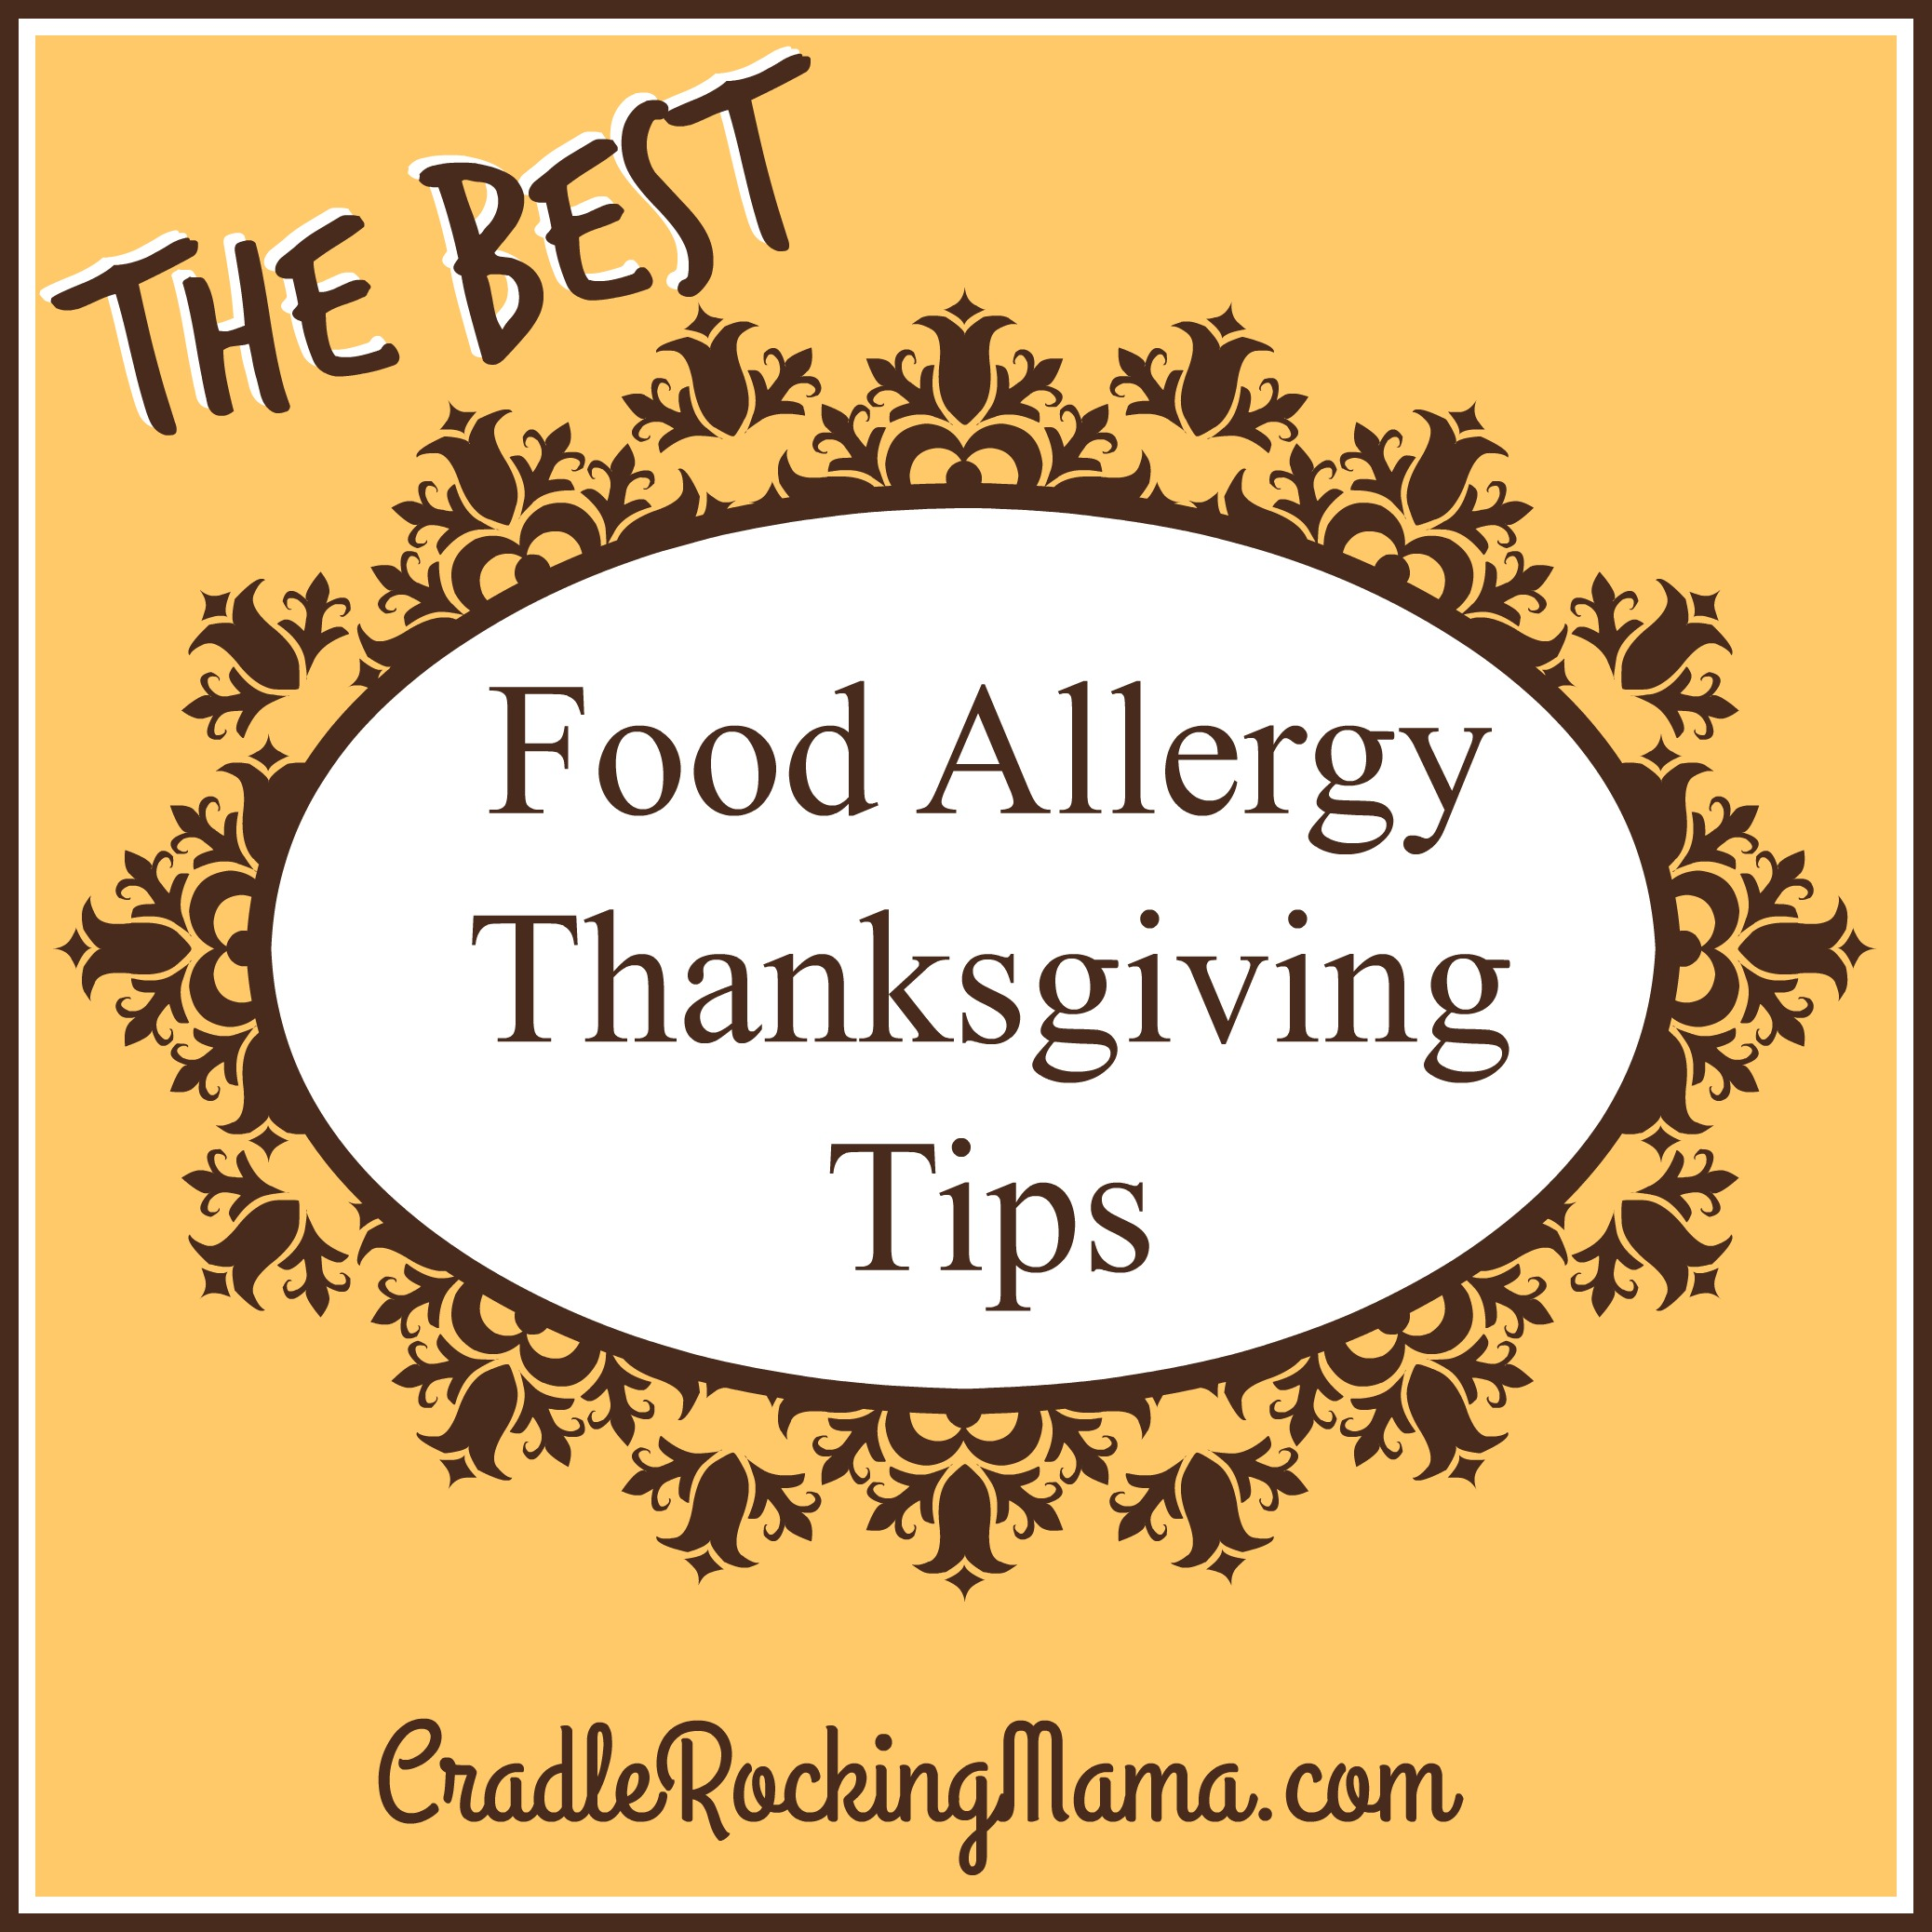 The Best Food Allergy Thanksgiving Tips CradleRockingMama.com